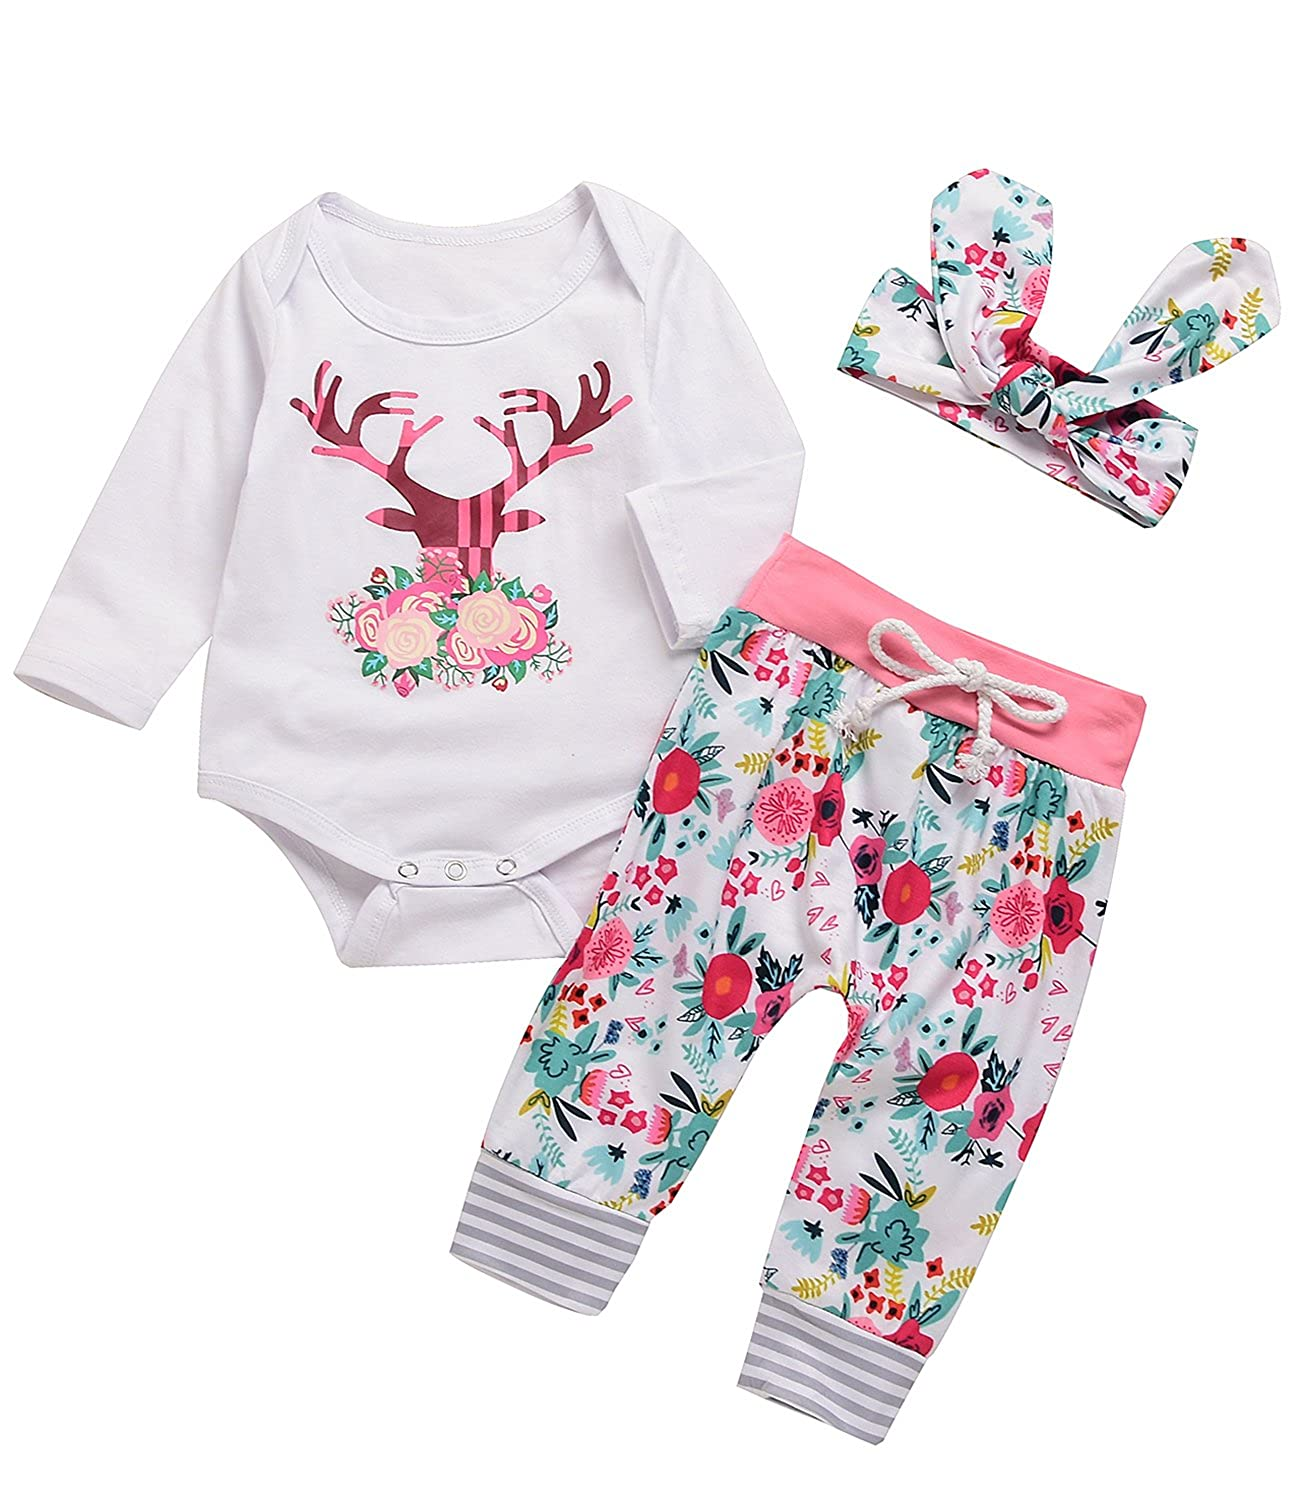 3PCs Baby Pink Reindeer Print Long Sleeves Romper Headband Pant Outfit Set